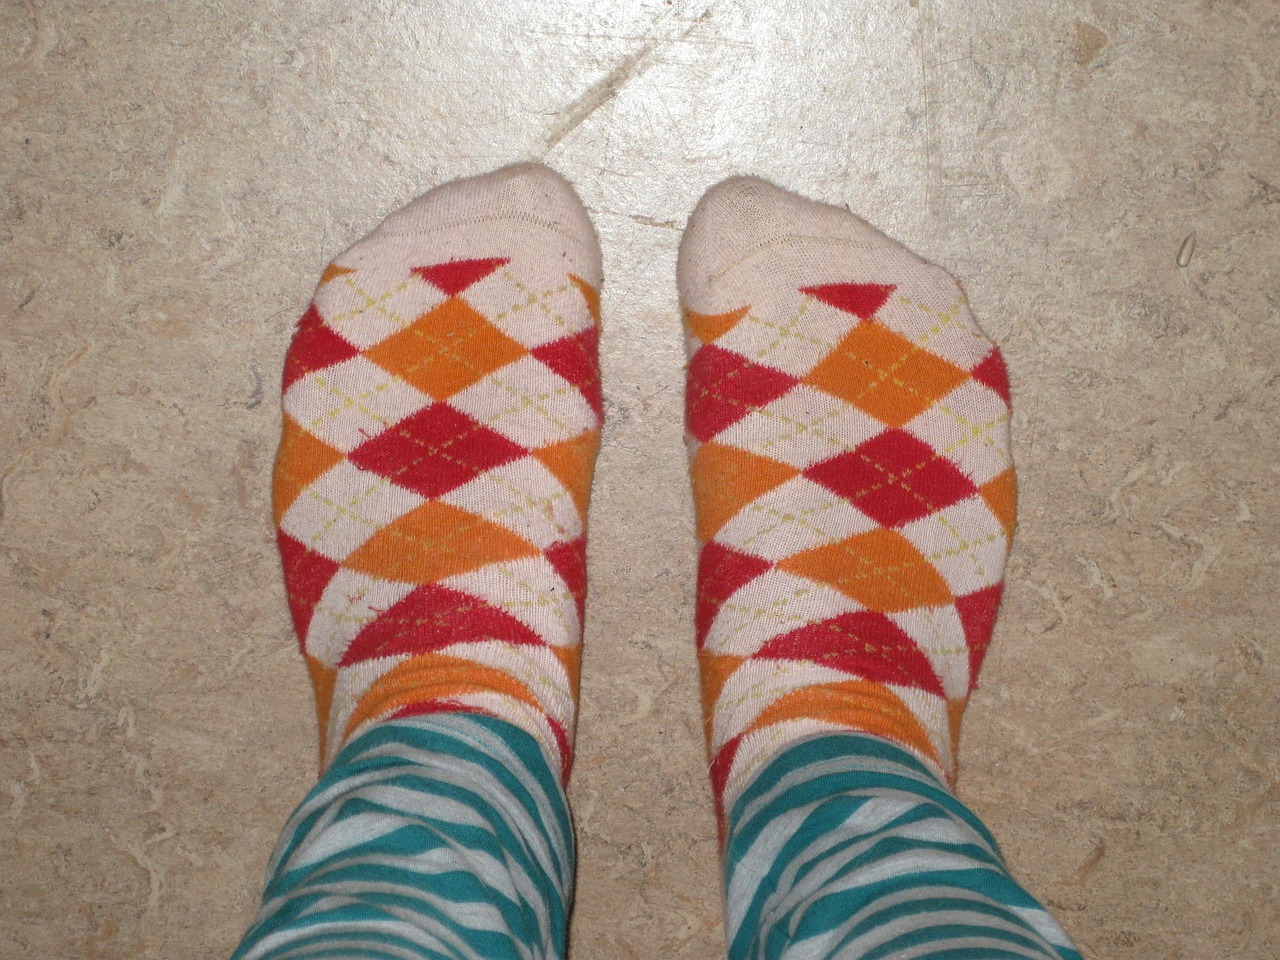 These are not my socks.